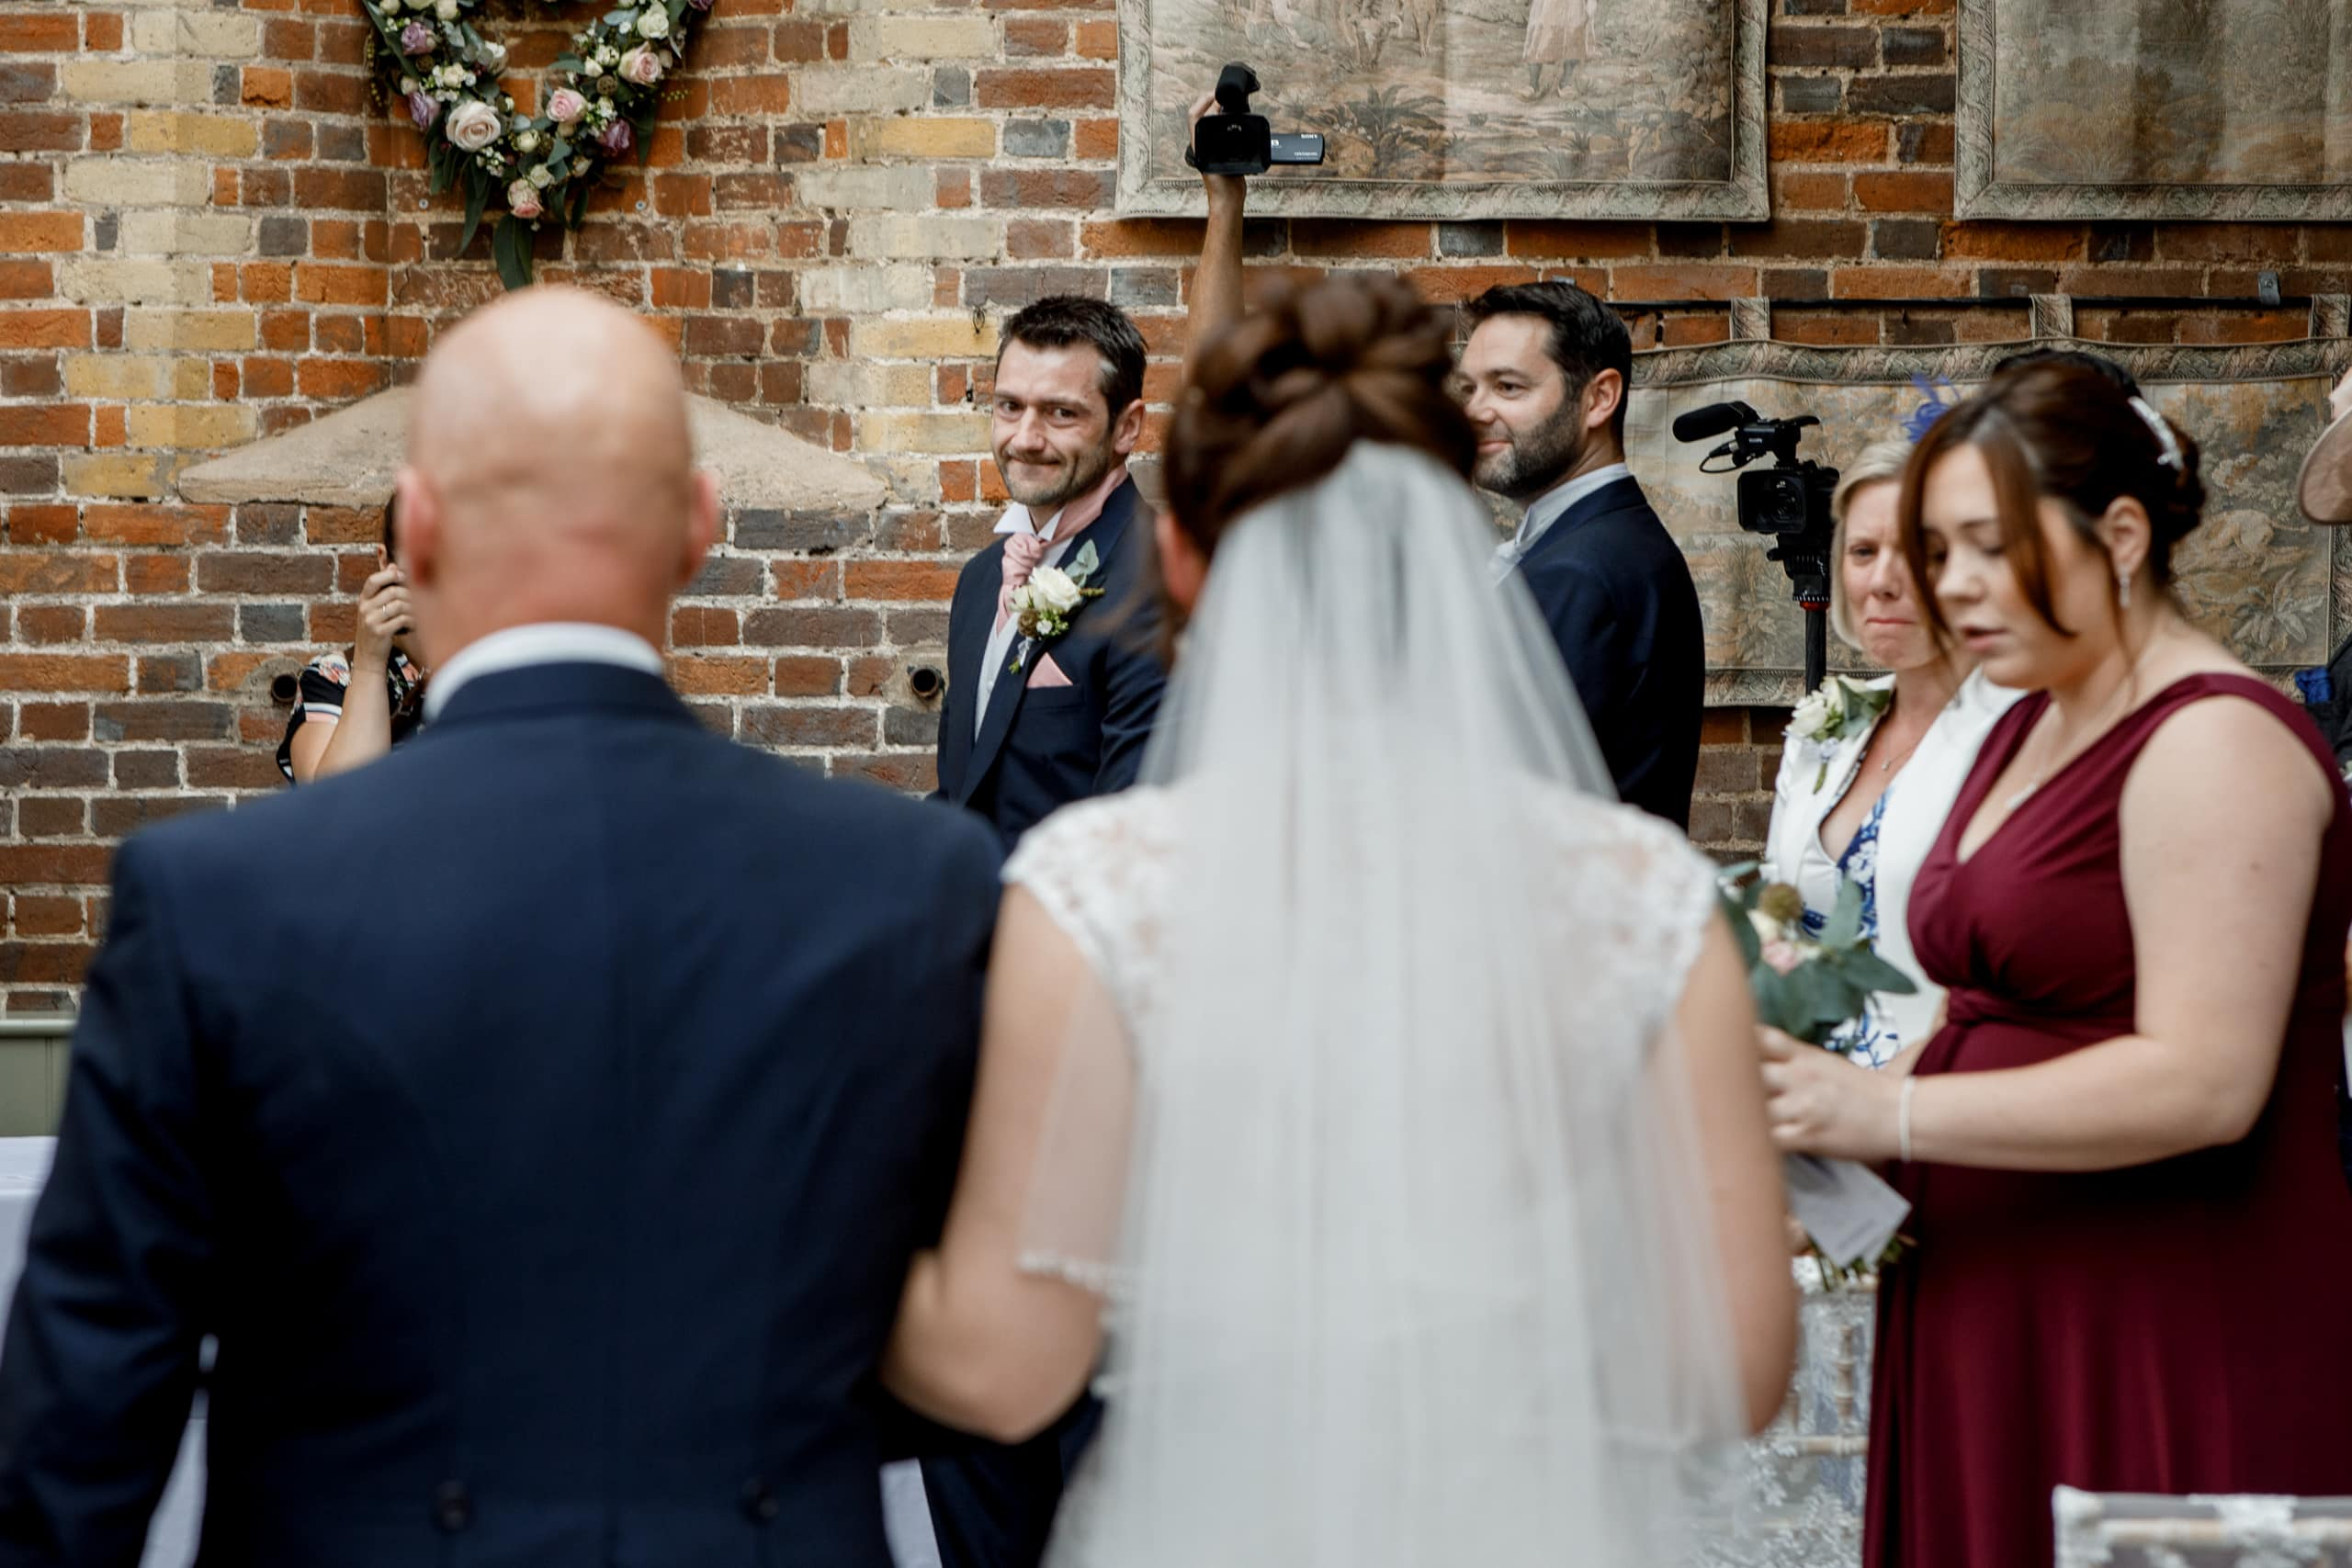 groom looking over shoulder at bride coming down aisle